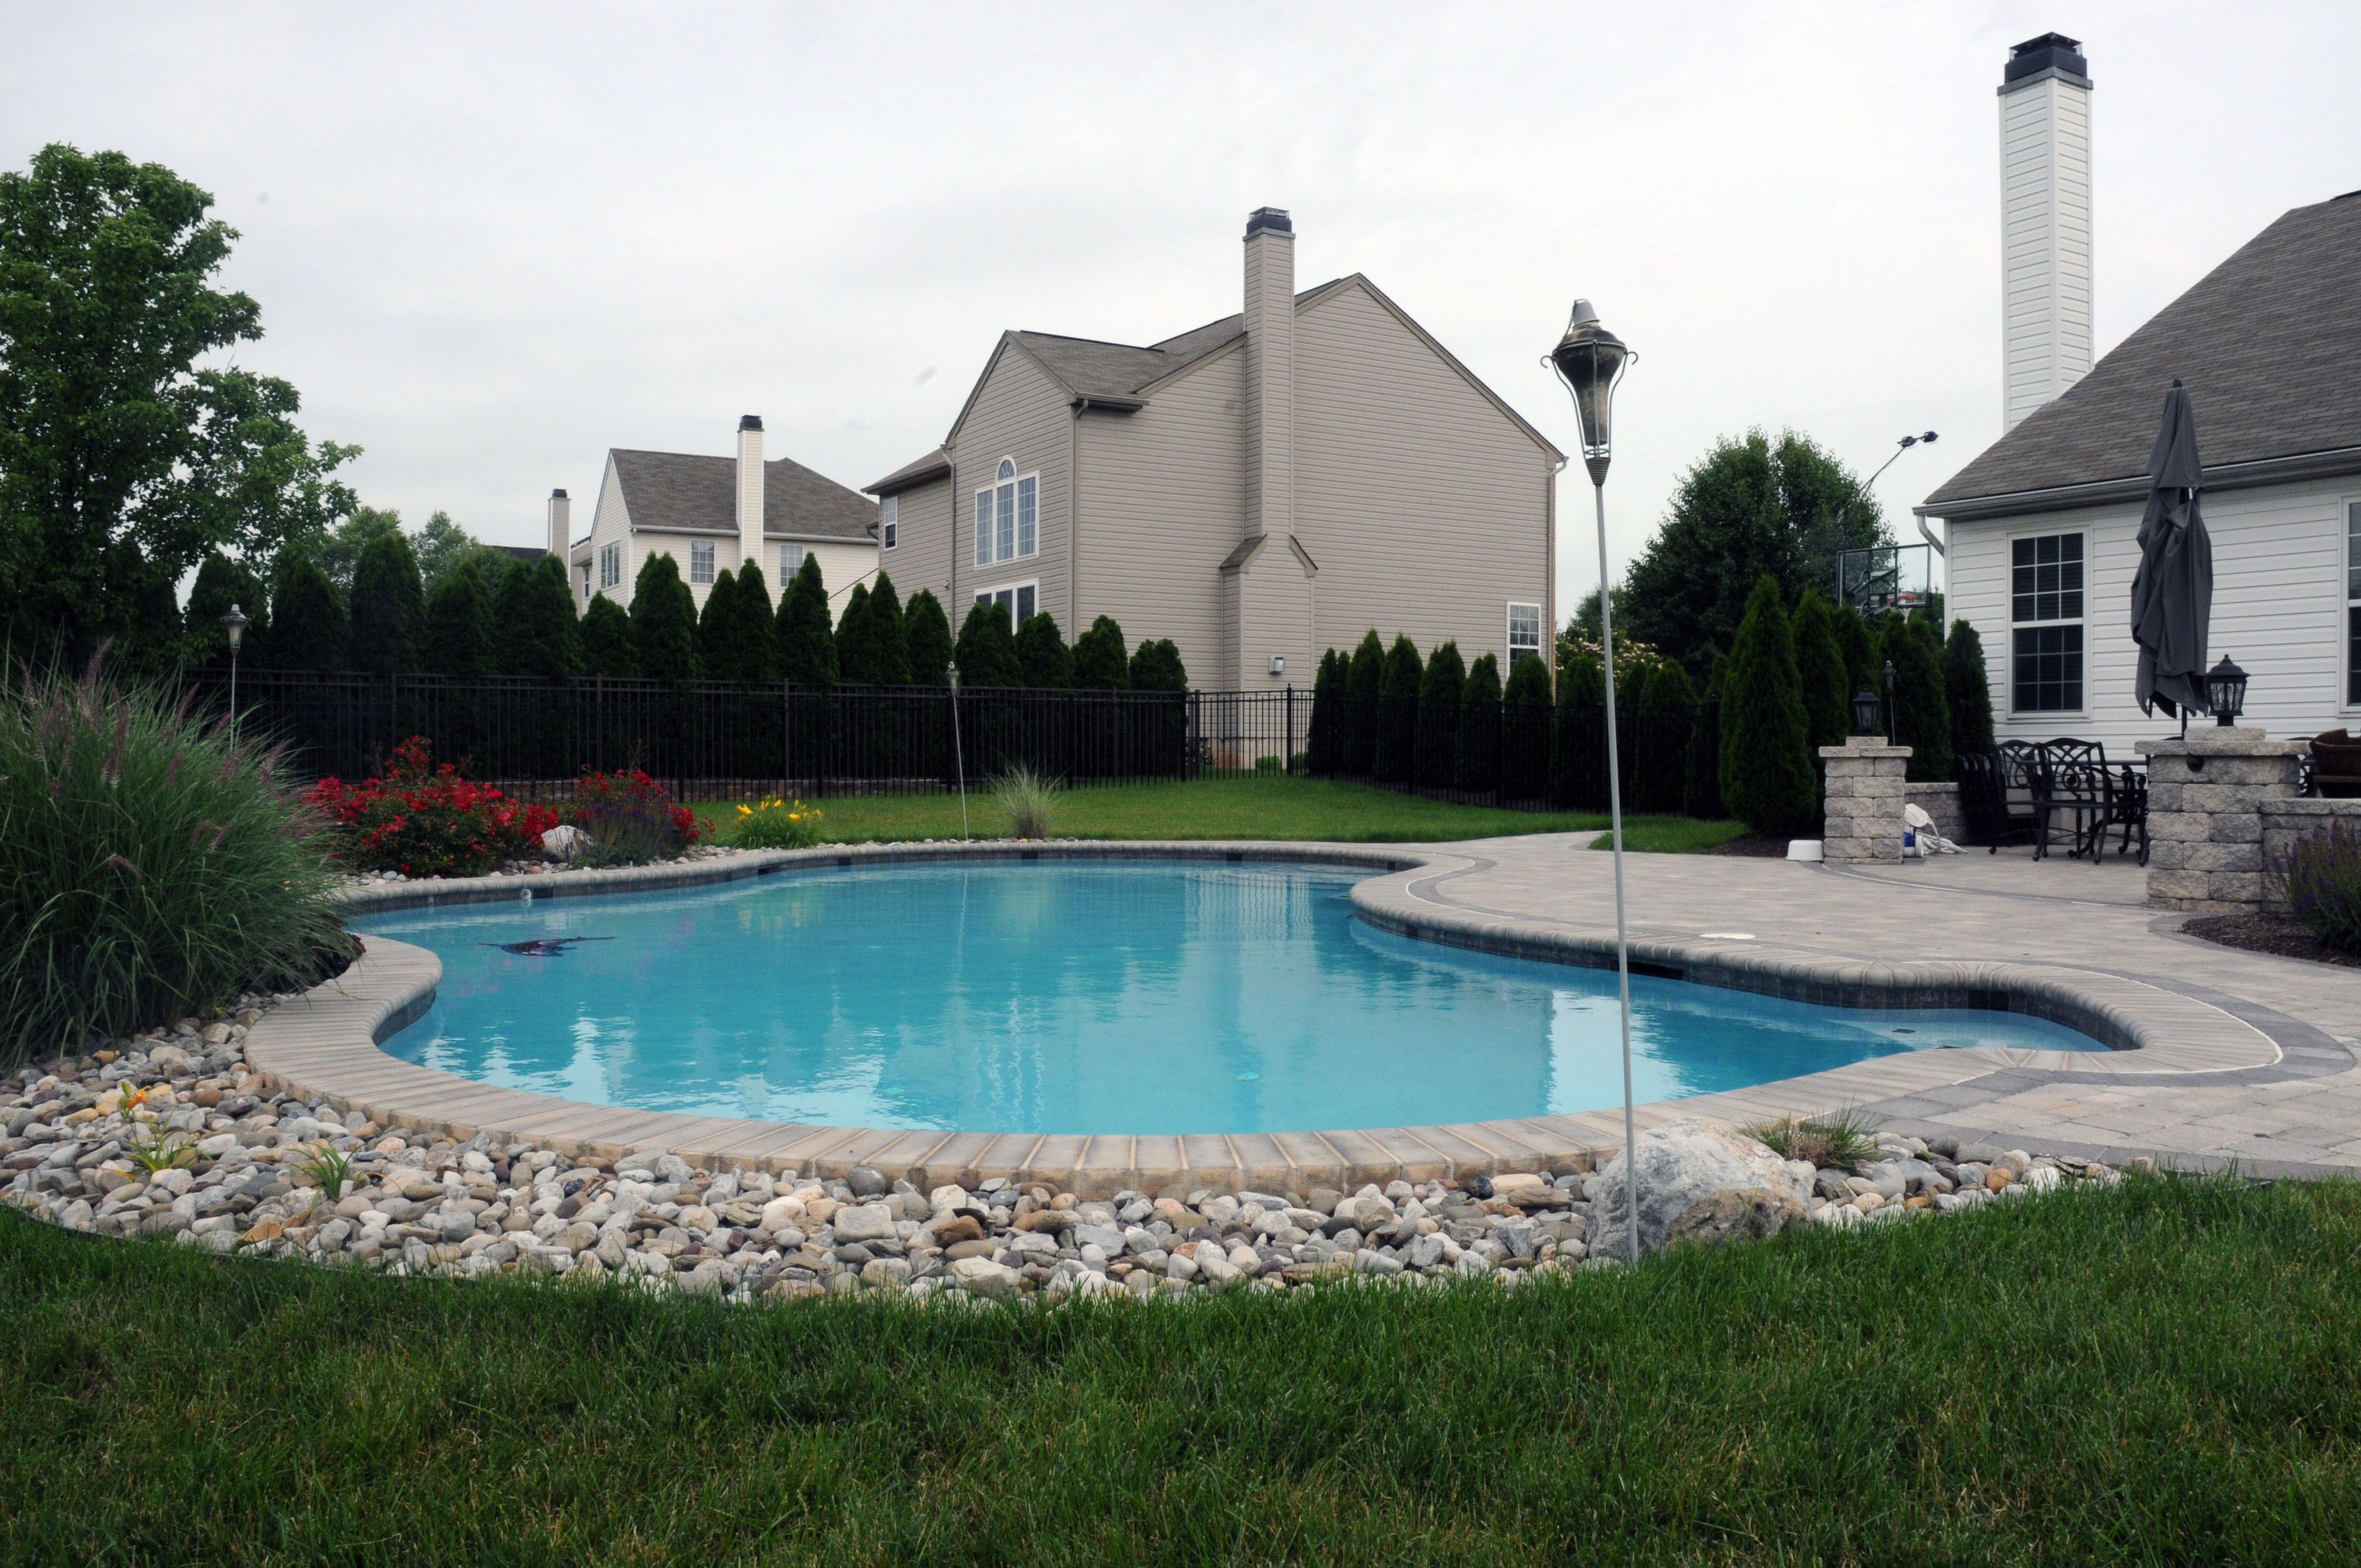 River Rocks Around The Edge Would Be Great All Around The Pool Concrete To Help Keep W Landscaping Around Pool Inground Pool Landscaping Pool Landscape Design